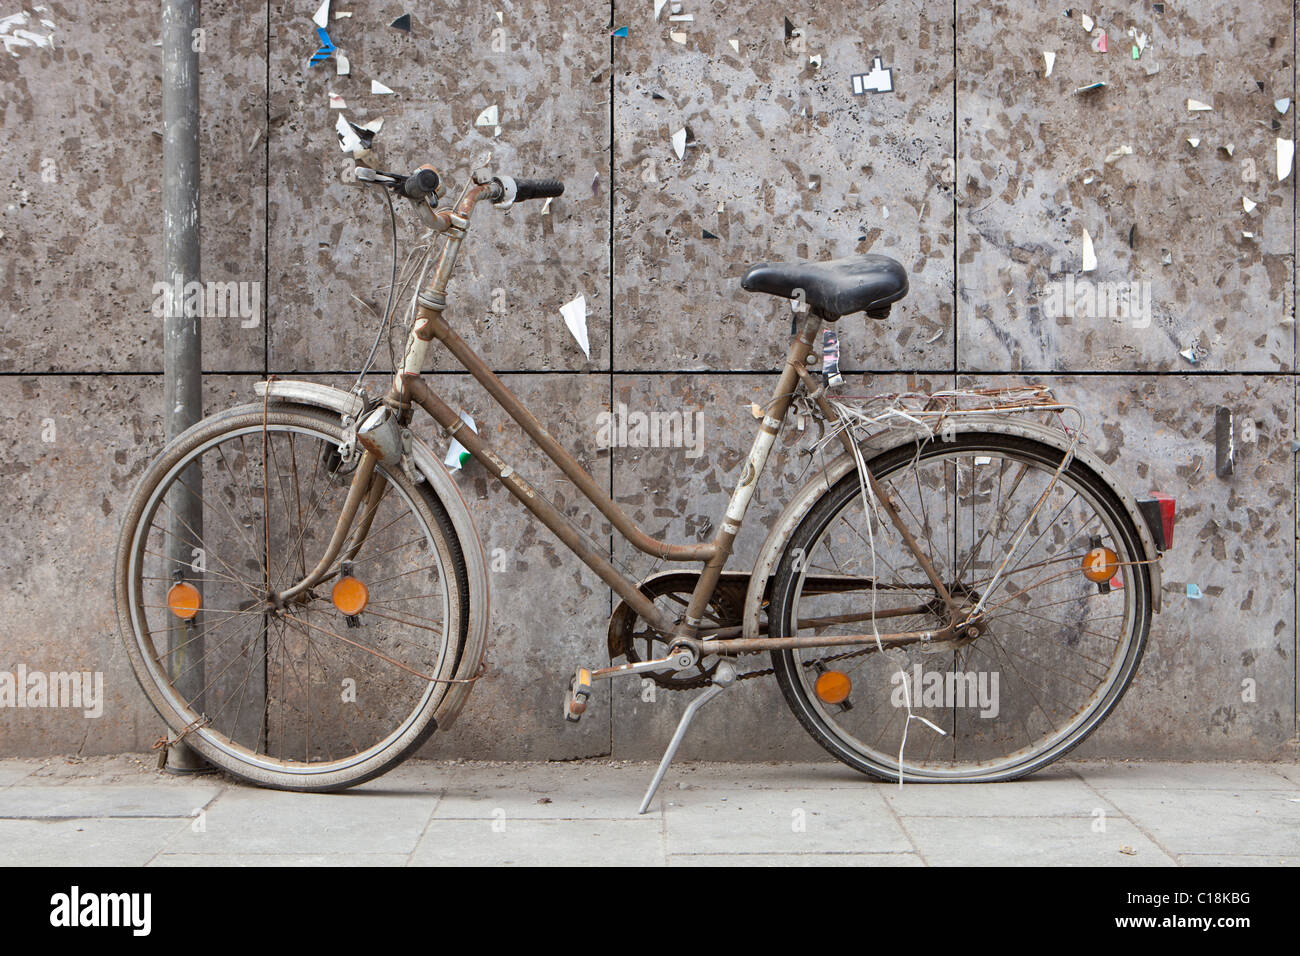 Old bike in front of a weathered wall - Stock Image